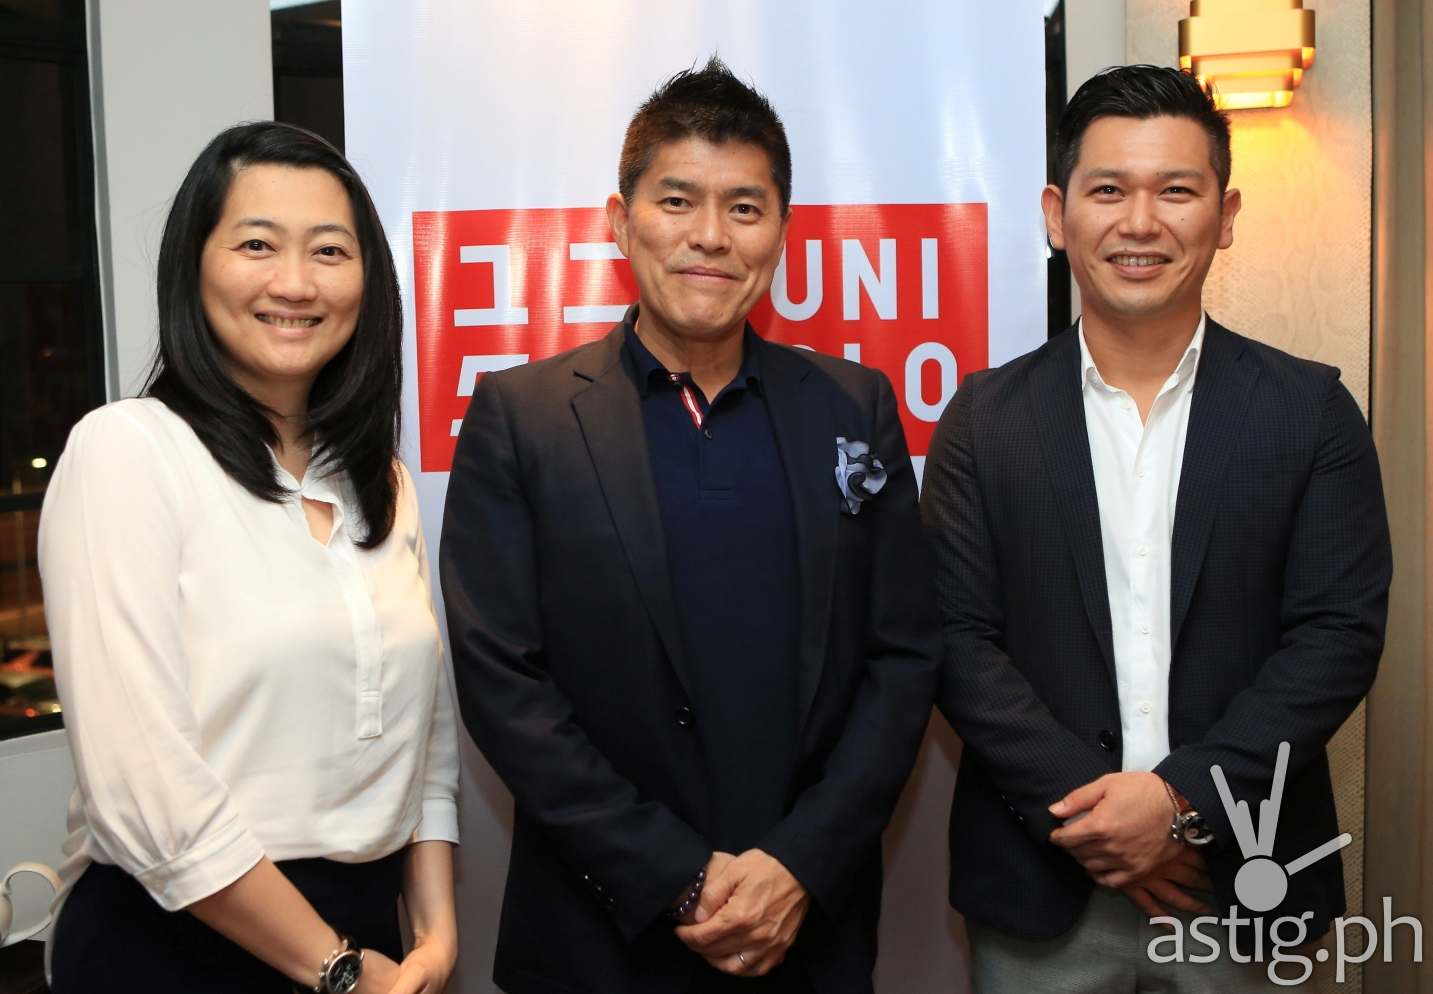 UNIQLO to Enter Cebu in the Fourth Quarter of 2015